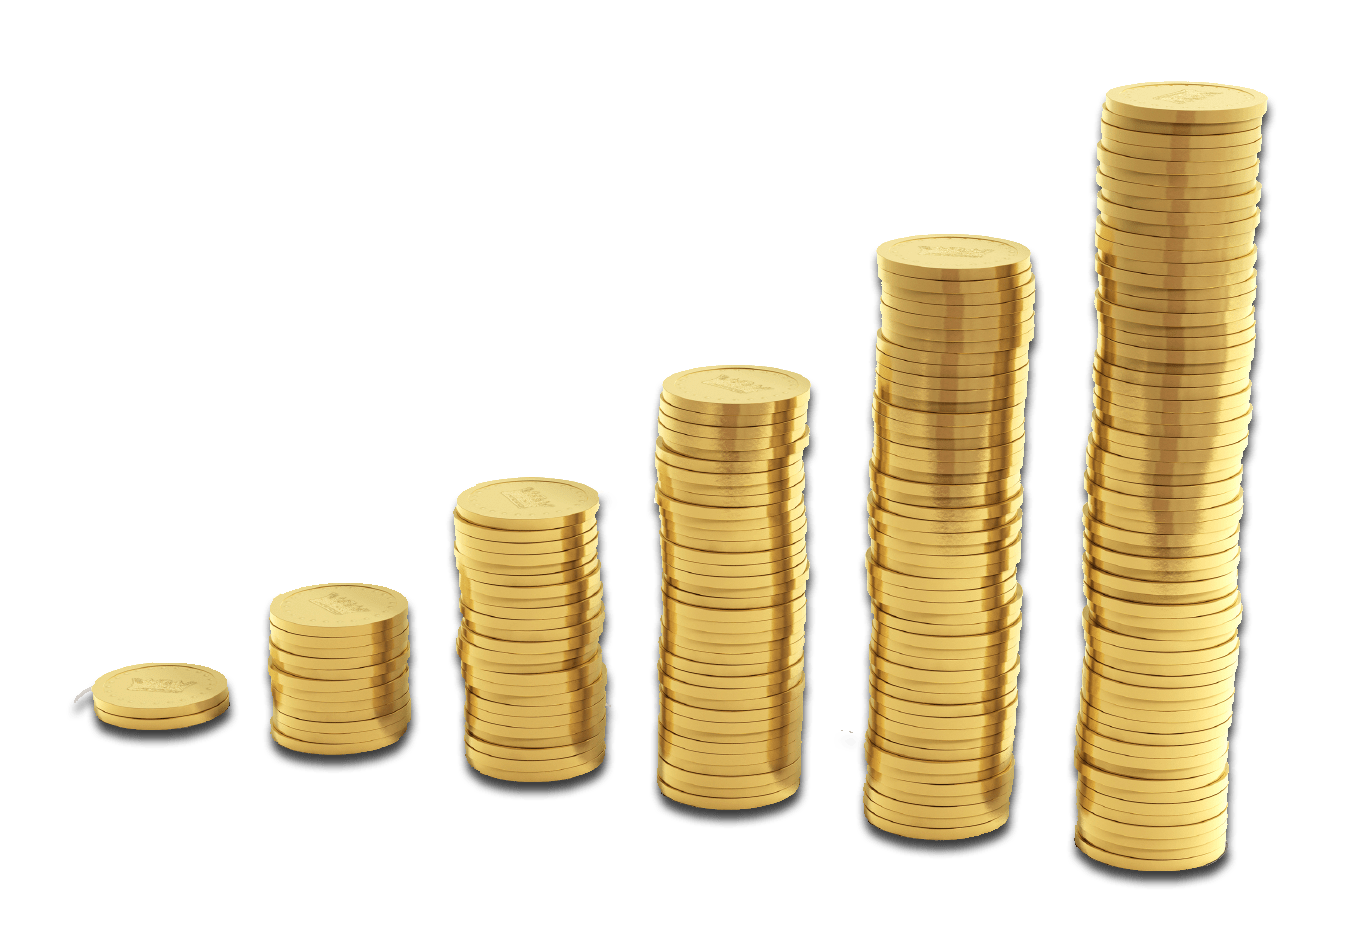 Coin clipart bill coin. Stacks of coins transparent